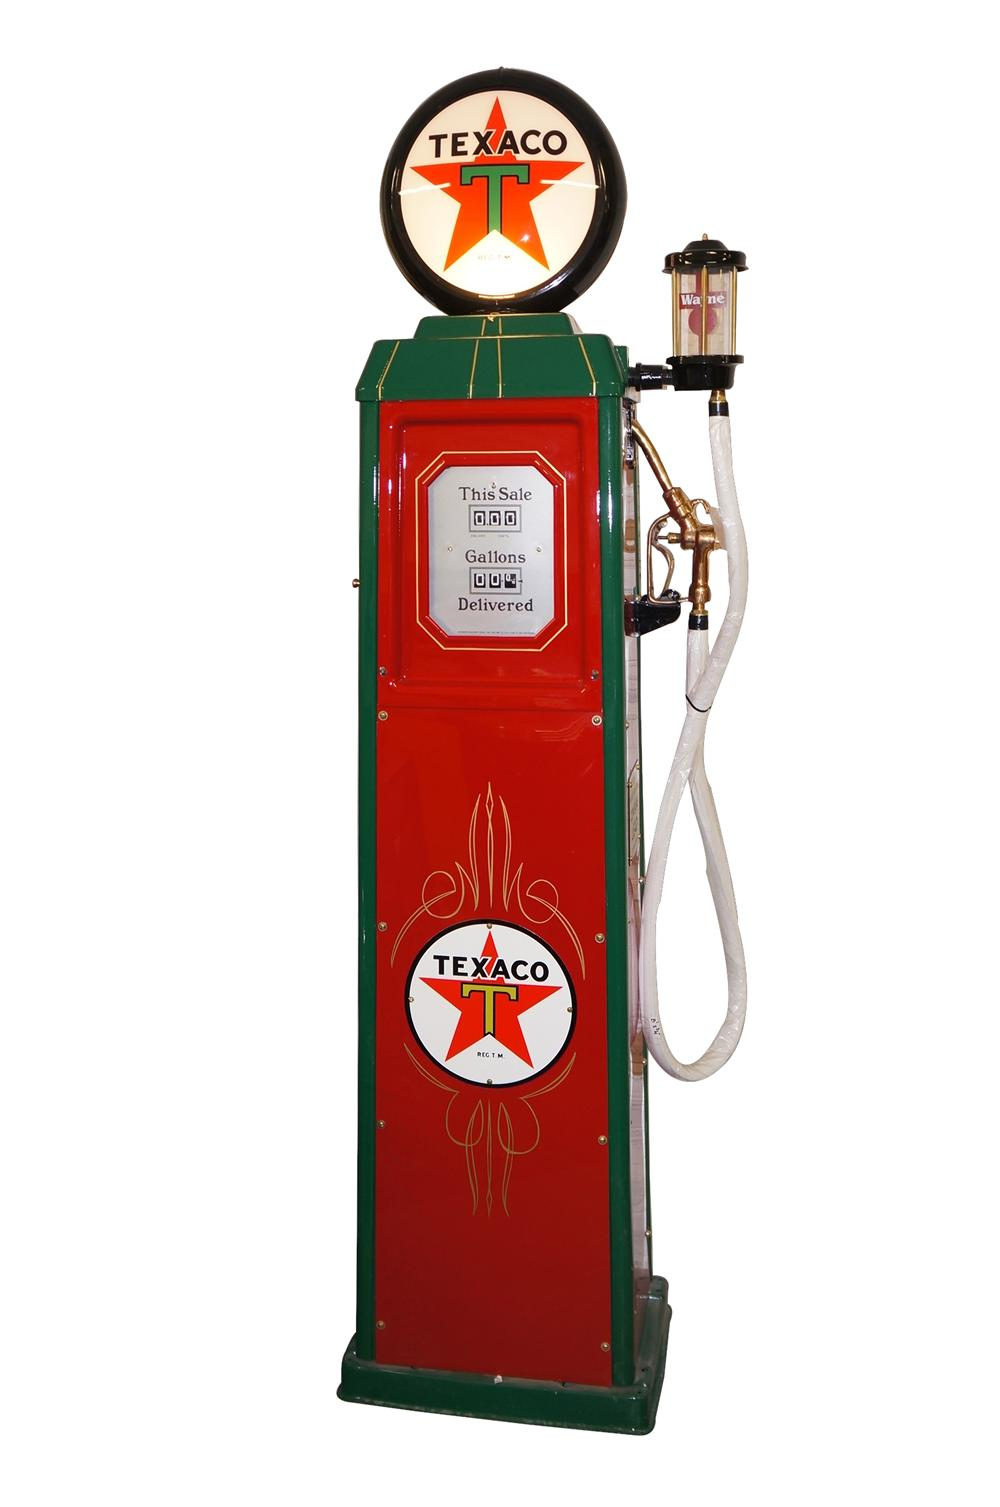 Marvelous and rare 1935 Texaco Oil filling station Wayne model #40 restored gas pump. - Front 3/4 - 138528